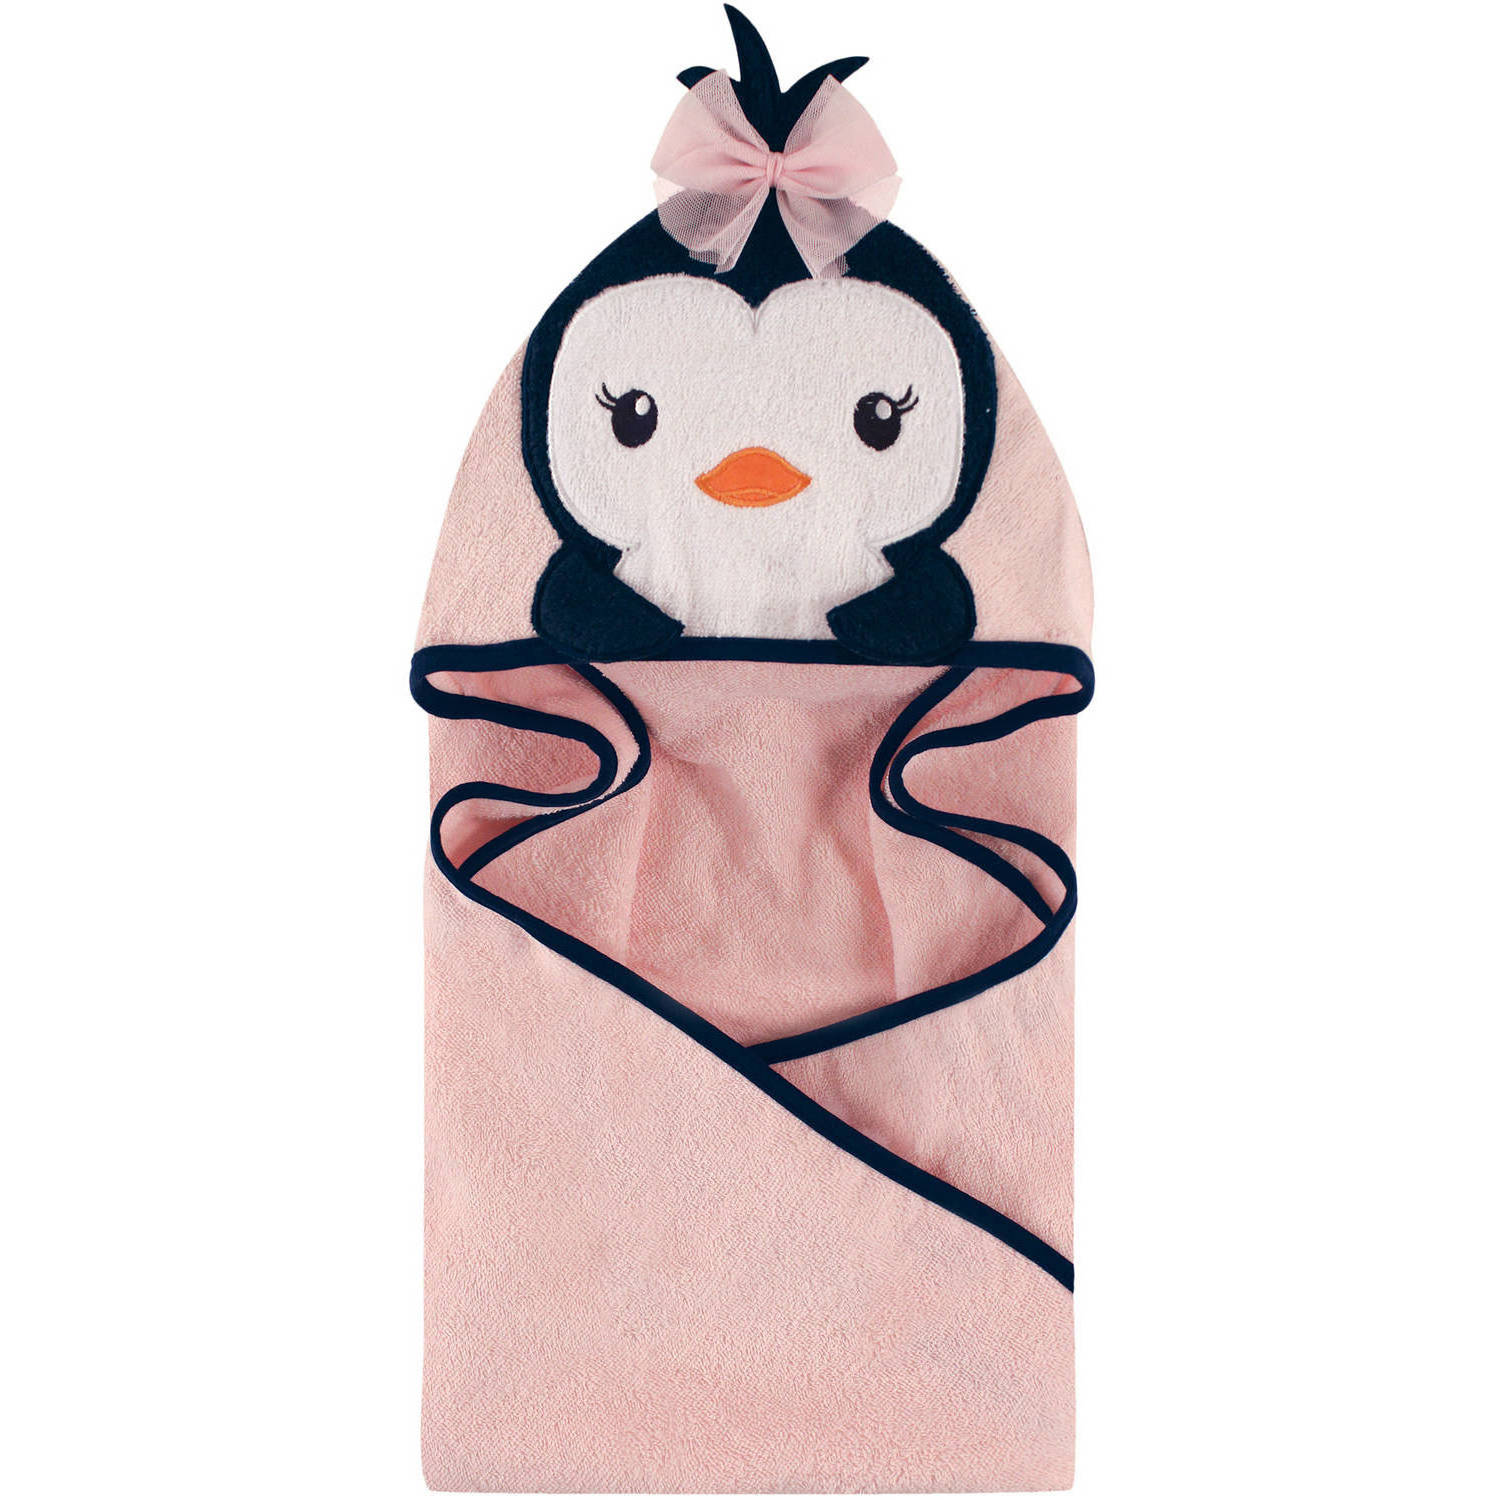 Woven Terry Animal Hooded Towel, Miss Penguin